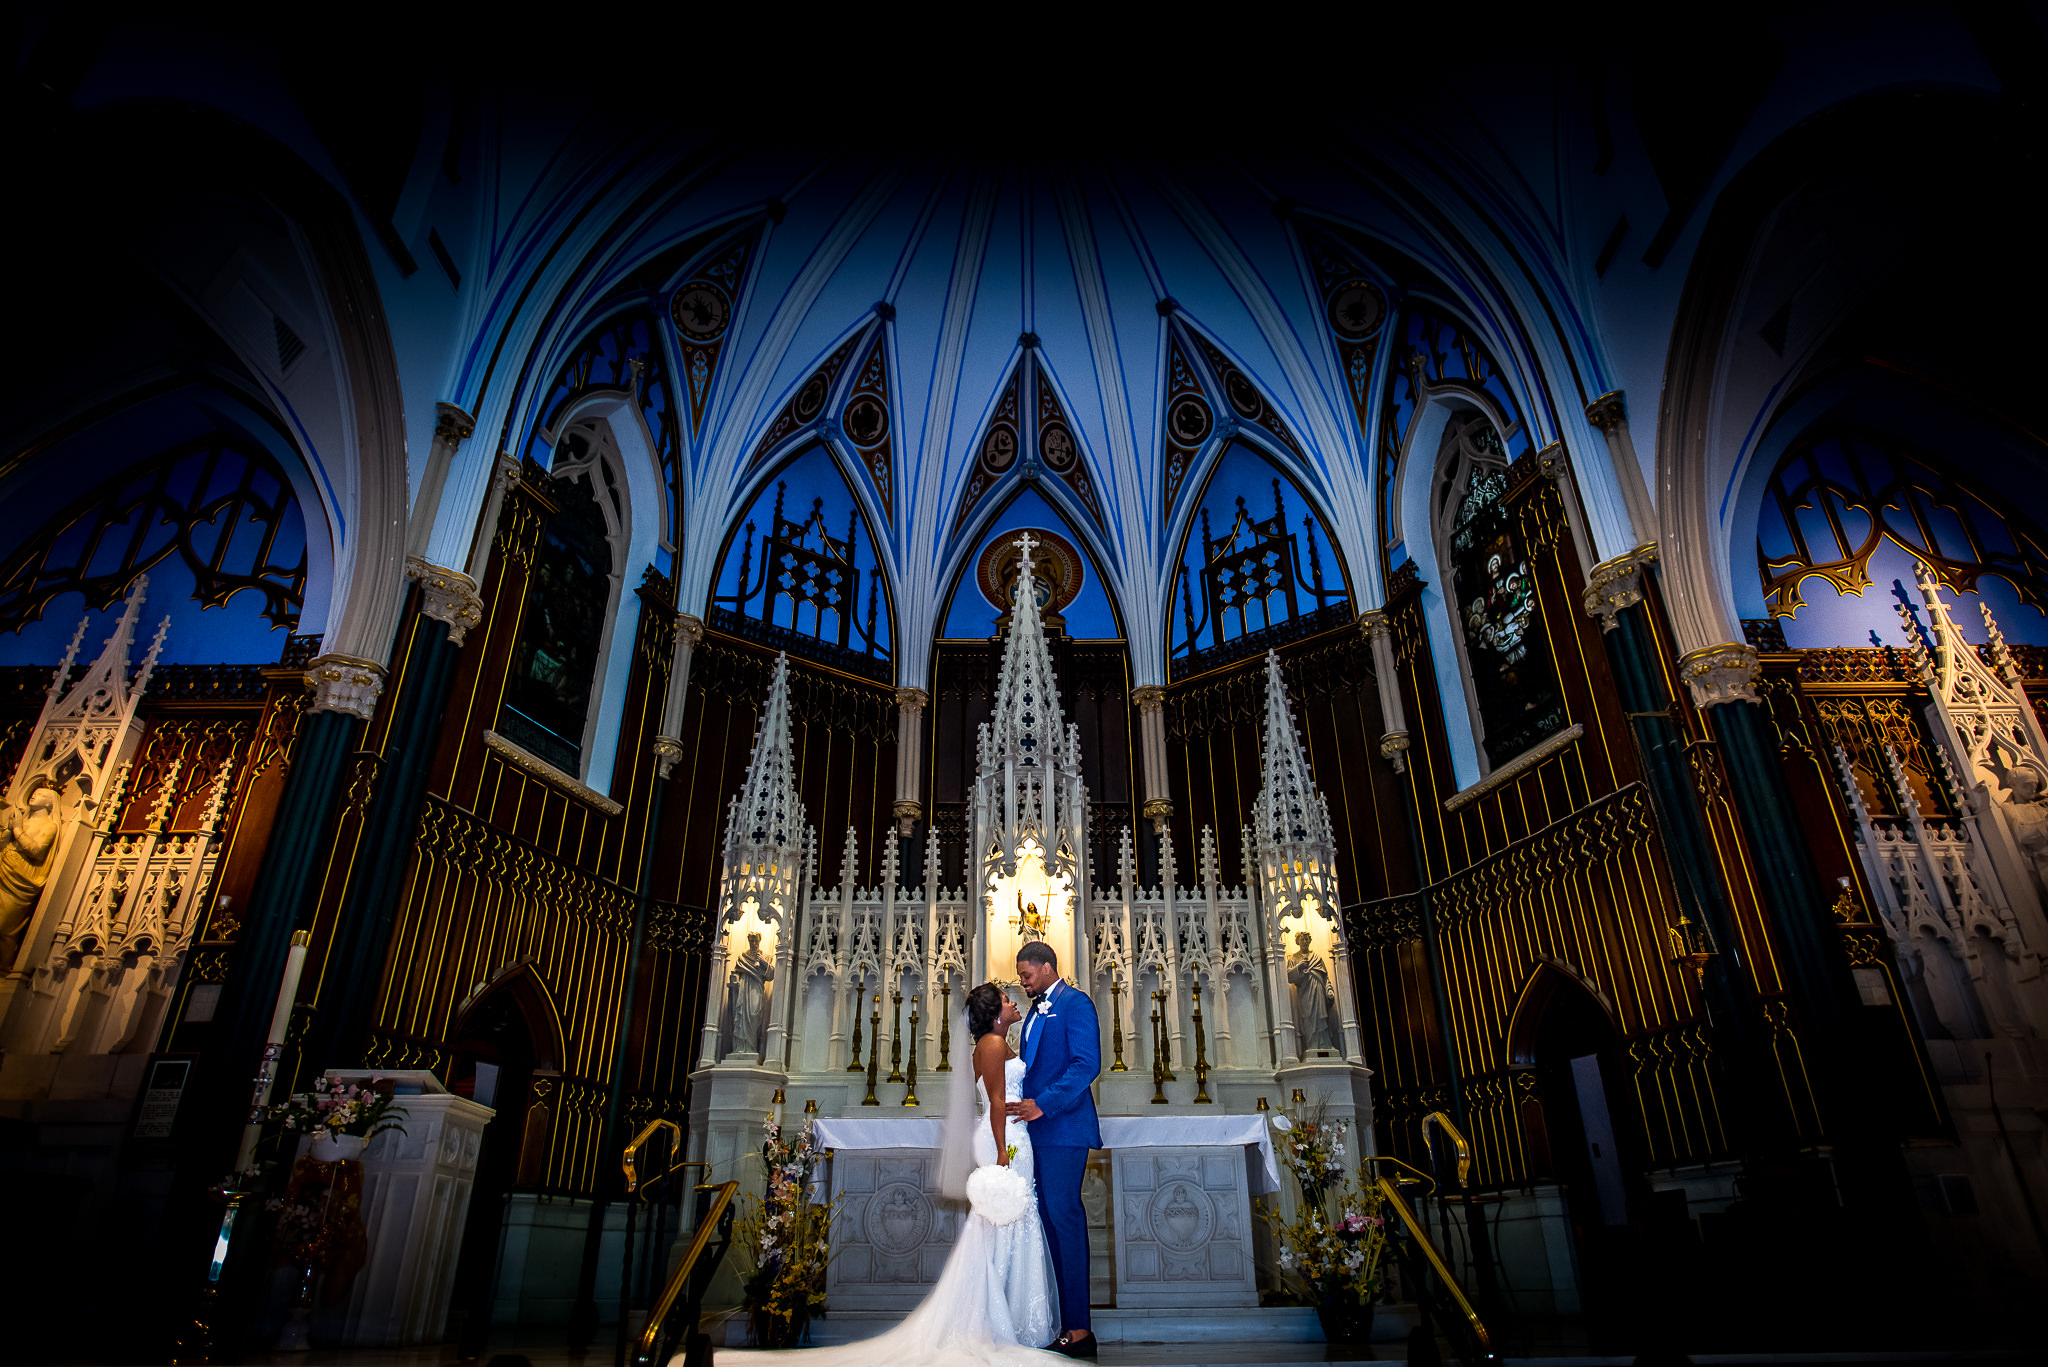 Bride and groom pose in cathedral- photo by Adibe Photography